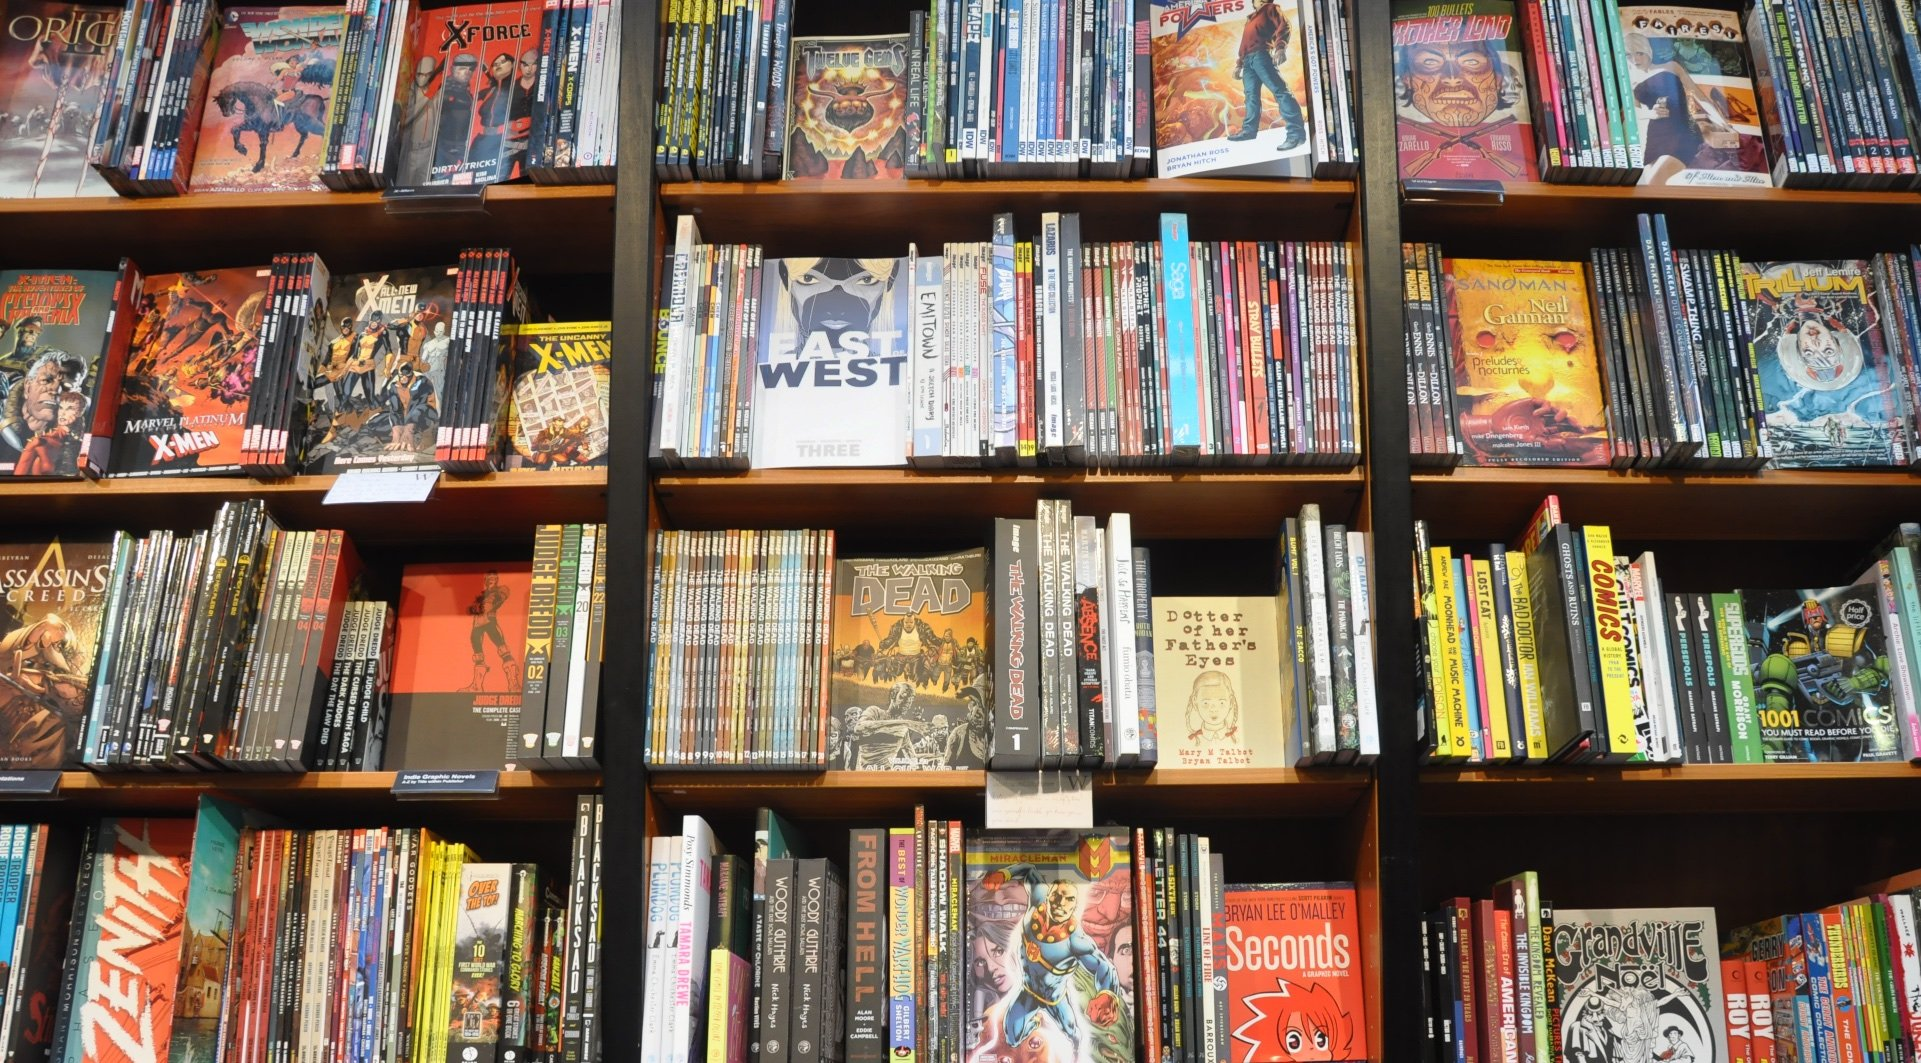 """Graphic Novels"" by flickr user morebyless is licensed under CC BY 2.0"